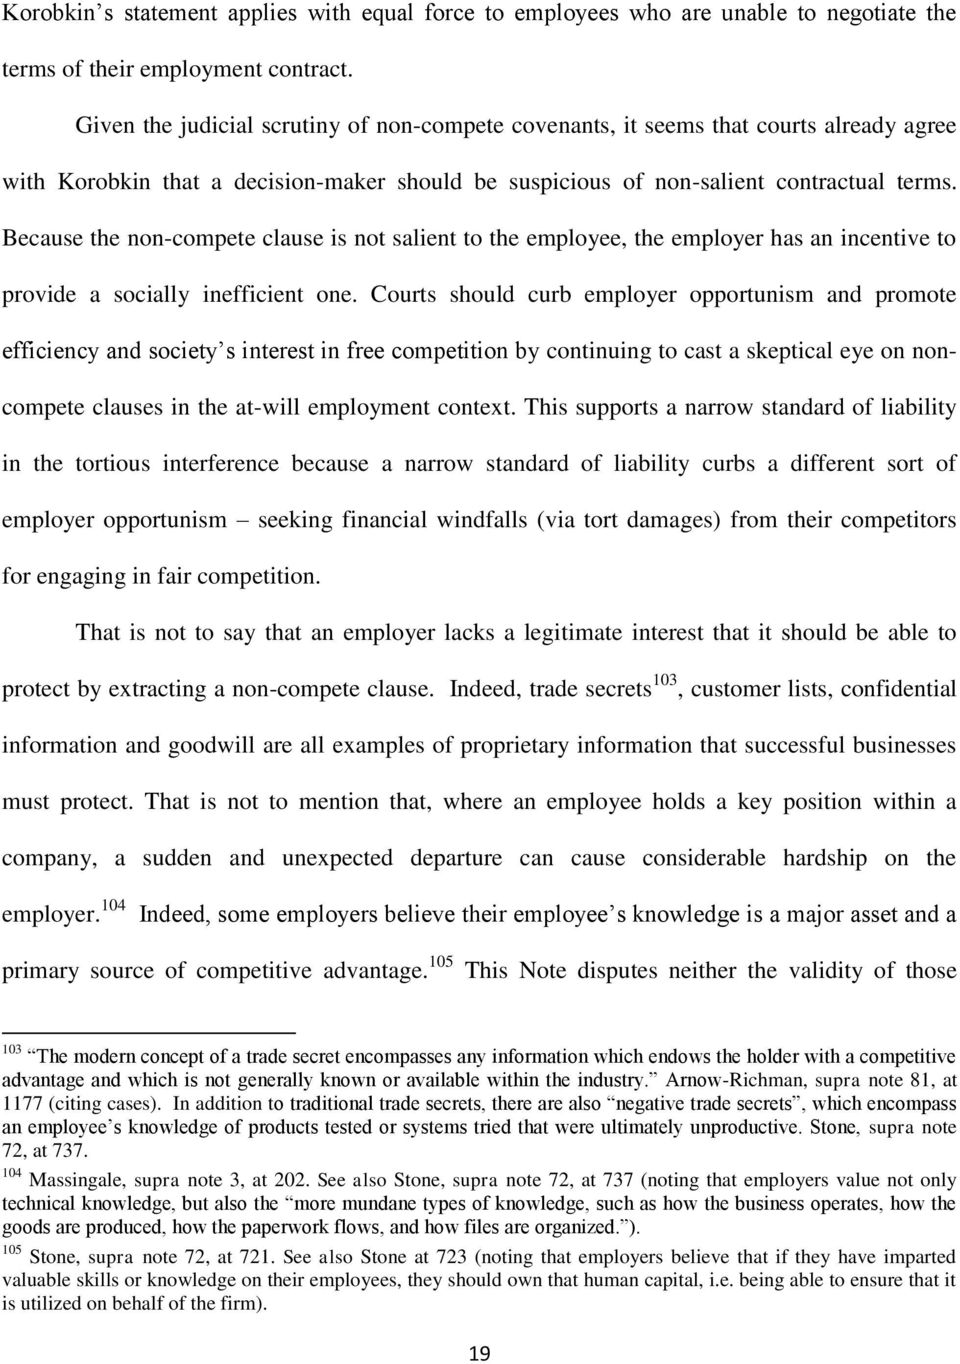 Because the non-compete clause is not salient to the employee, the employer has an incentive to provide a socially inefficient one.